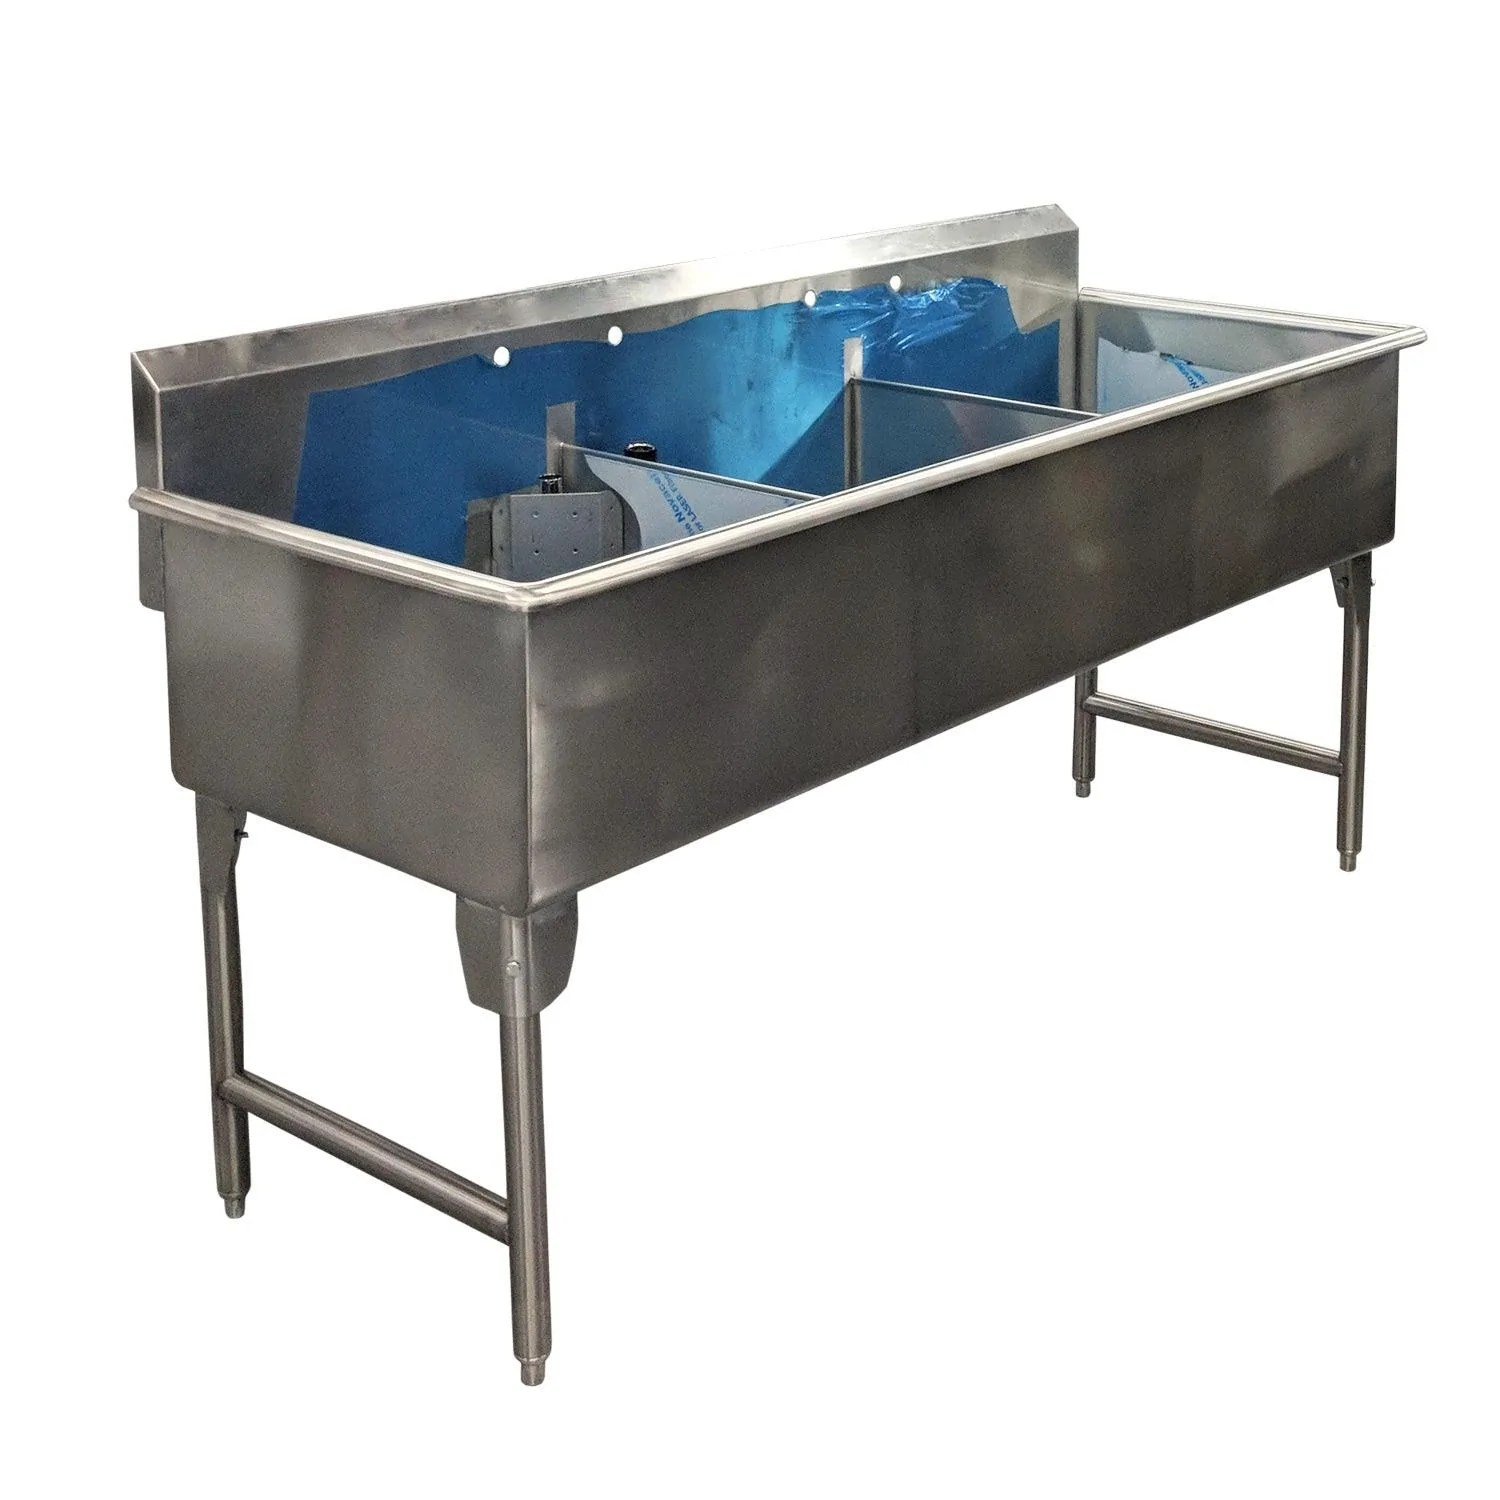 nella 24 x 48 x 13 5 heavy duty stainless steel three compartment sink t2448